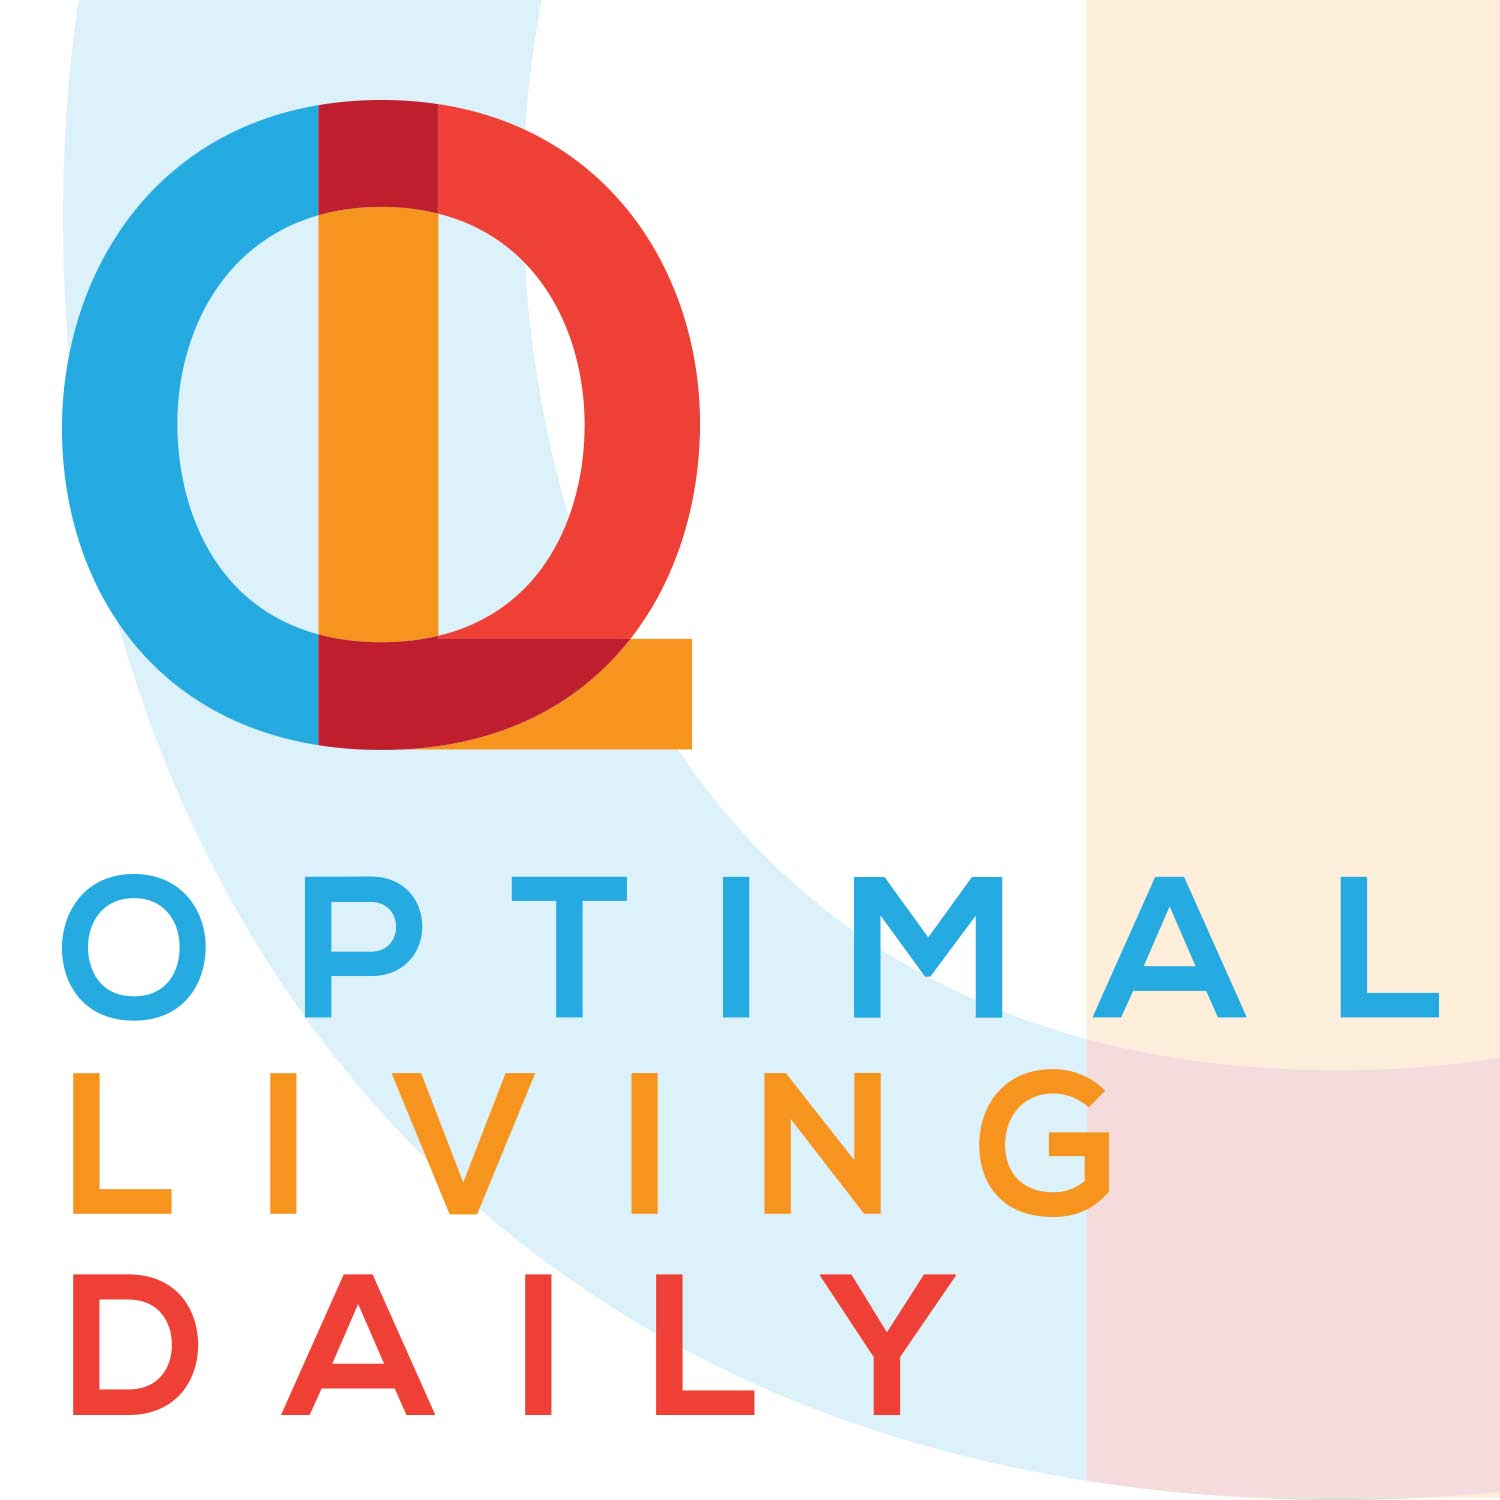 Optimal Living Daily: Podcasts to listen to for personal growth